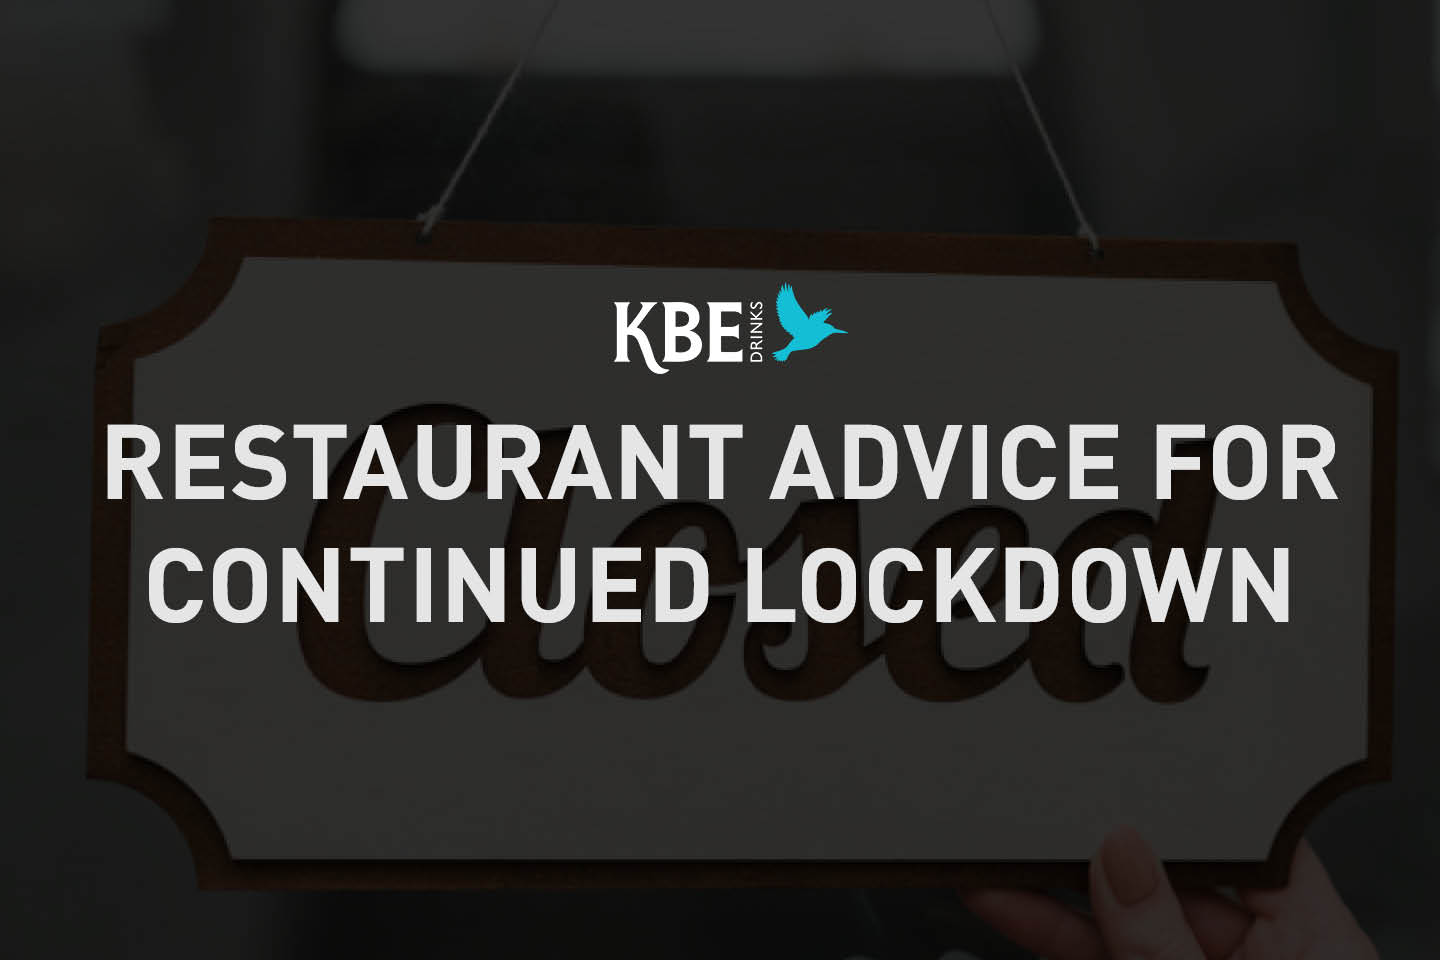 Restaurant advice for continued lockdown